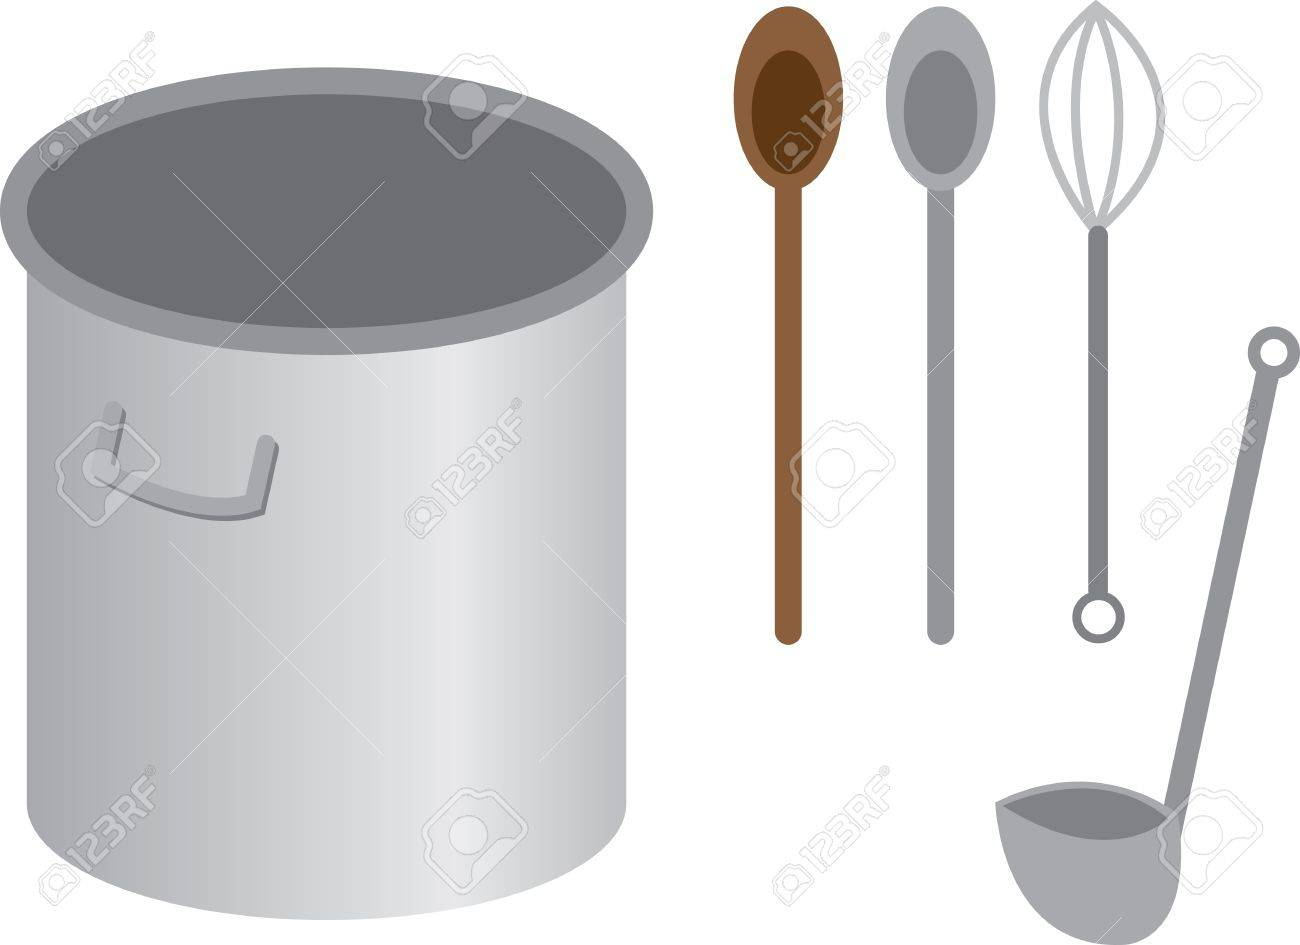 Stainless steel cooking pot with spoon whisk and ladle Stock Vector - 15385285